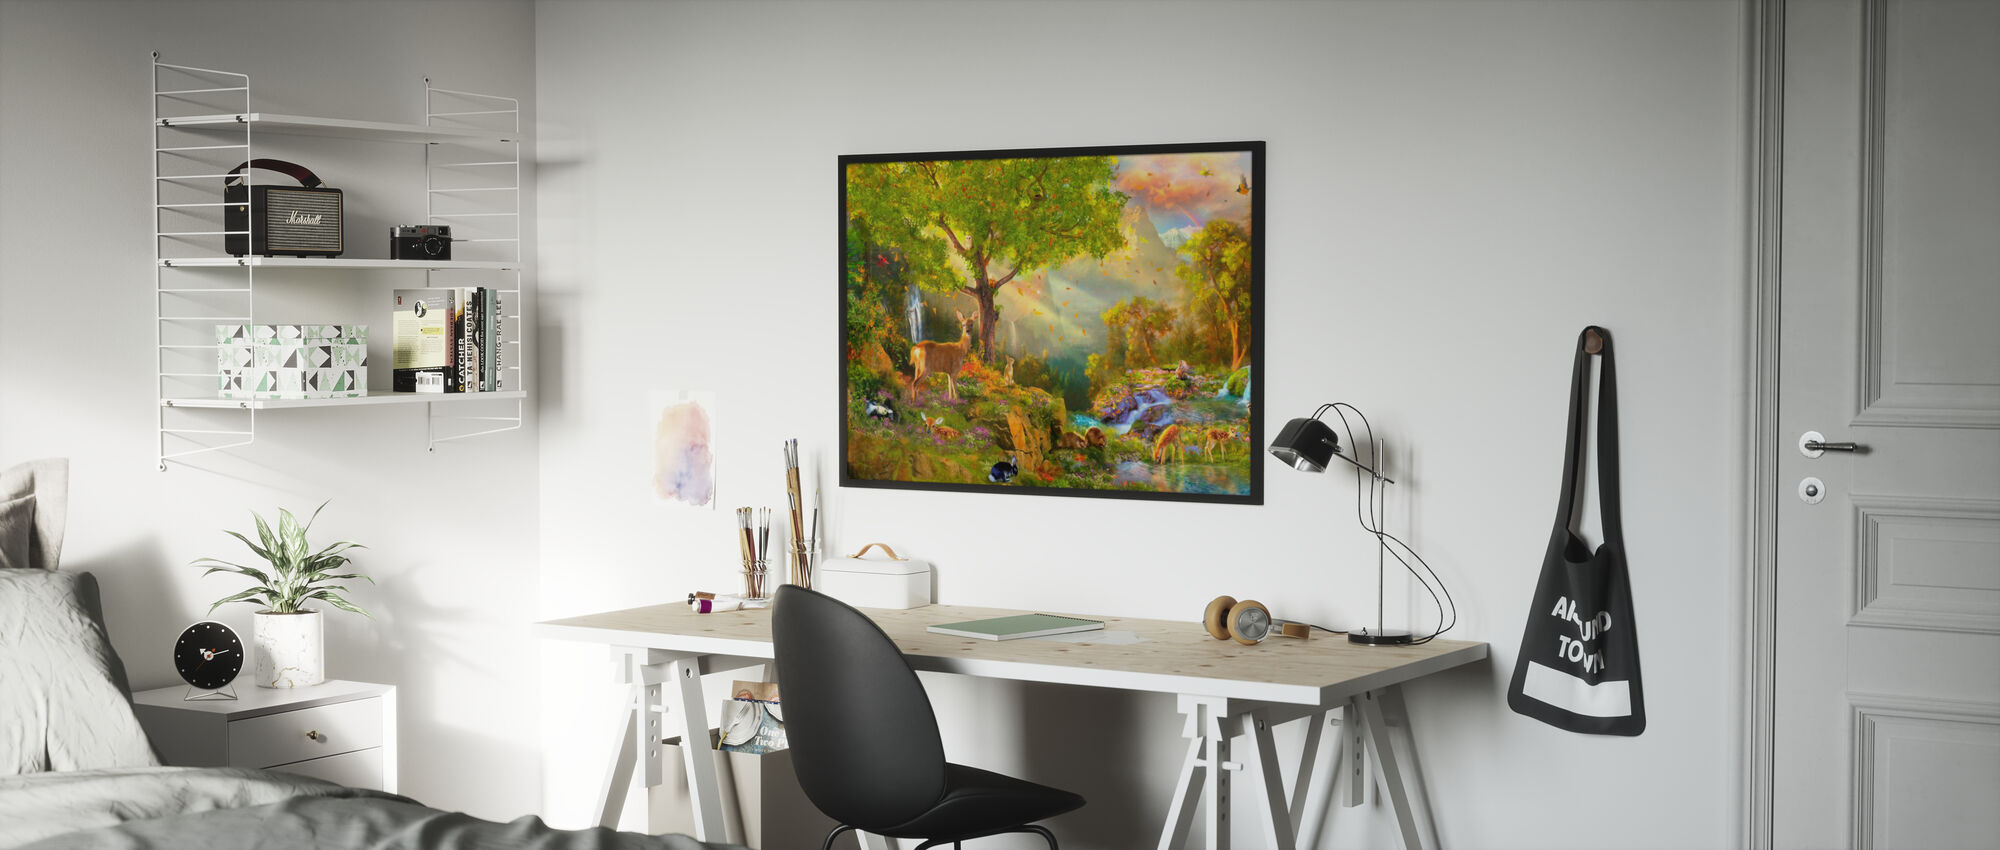 Fawn Mountain - Poster - Kids Room